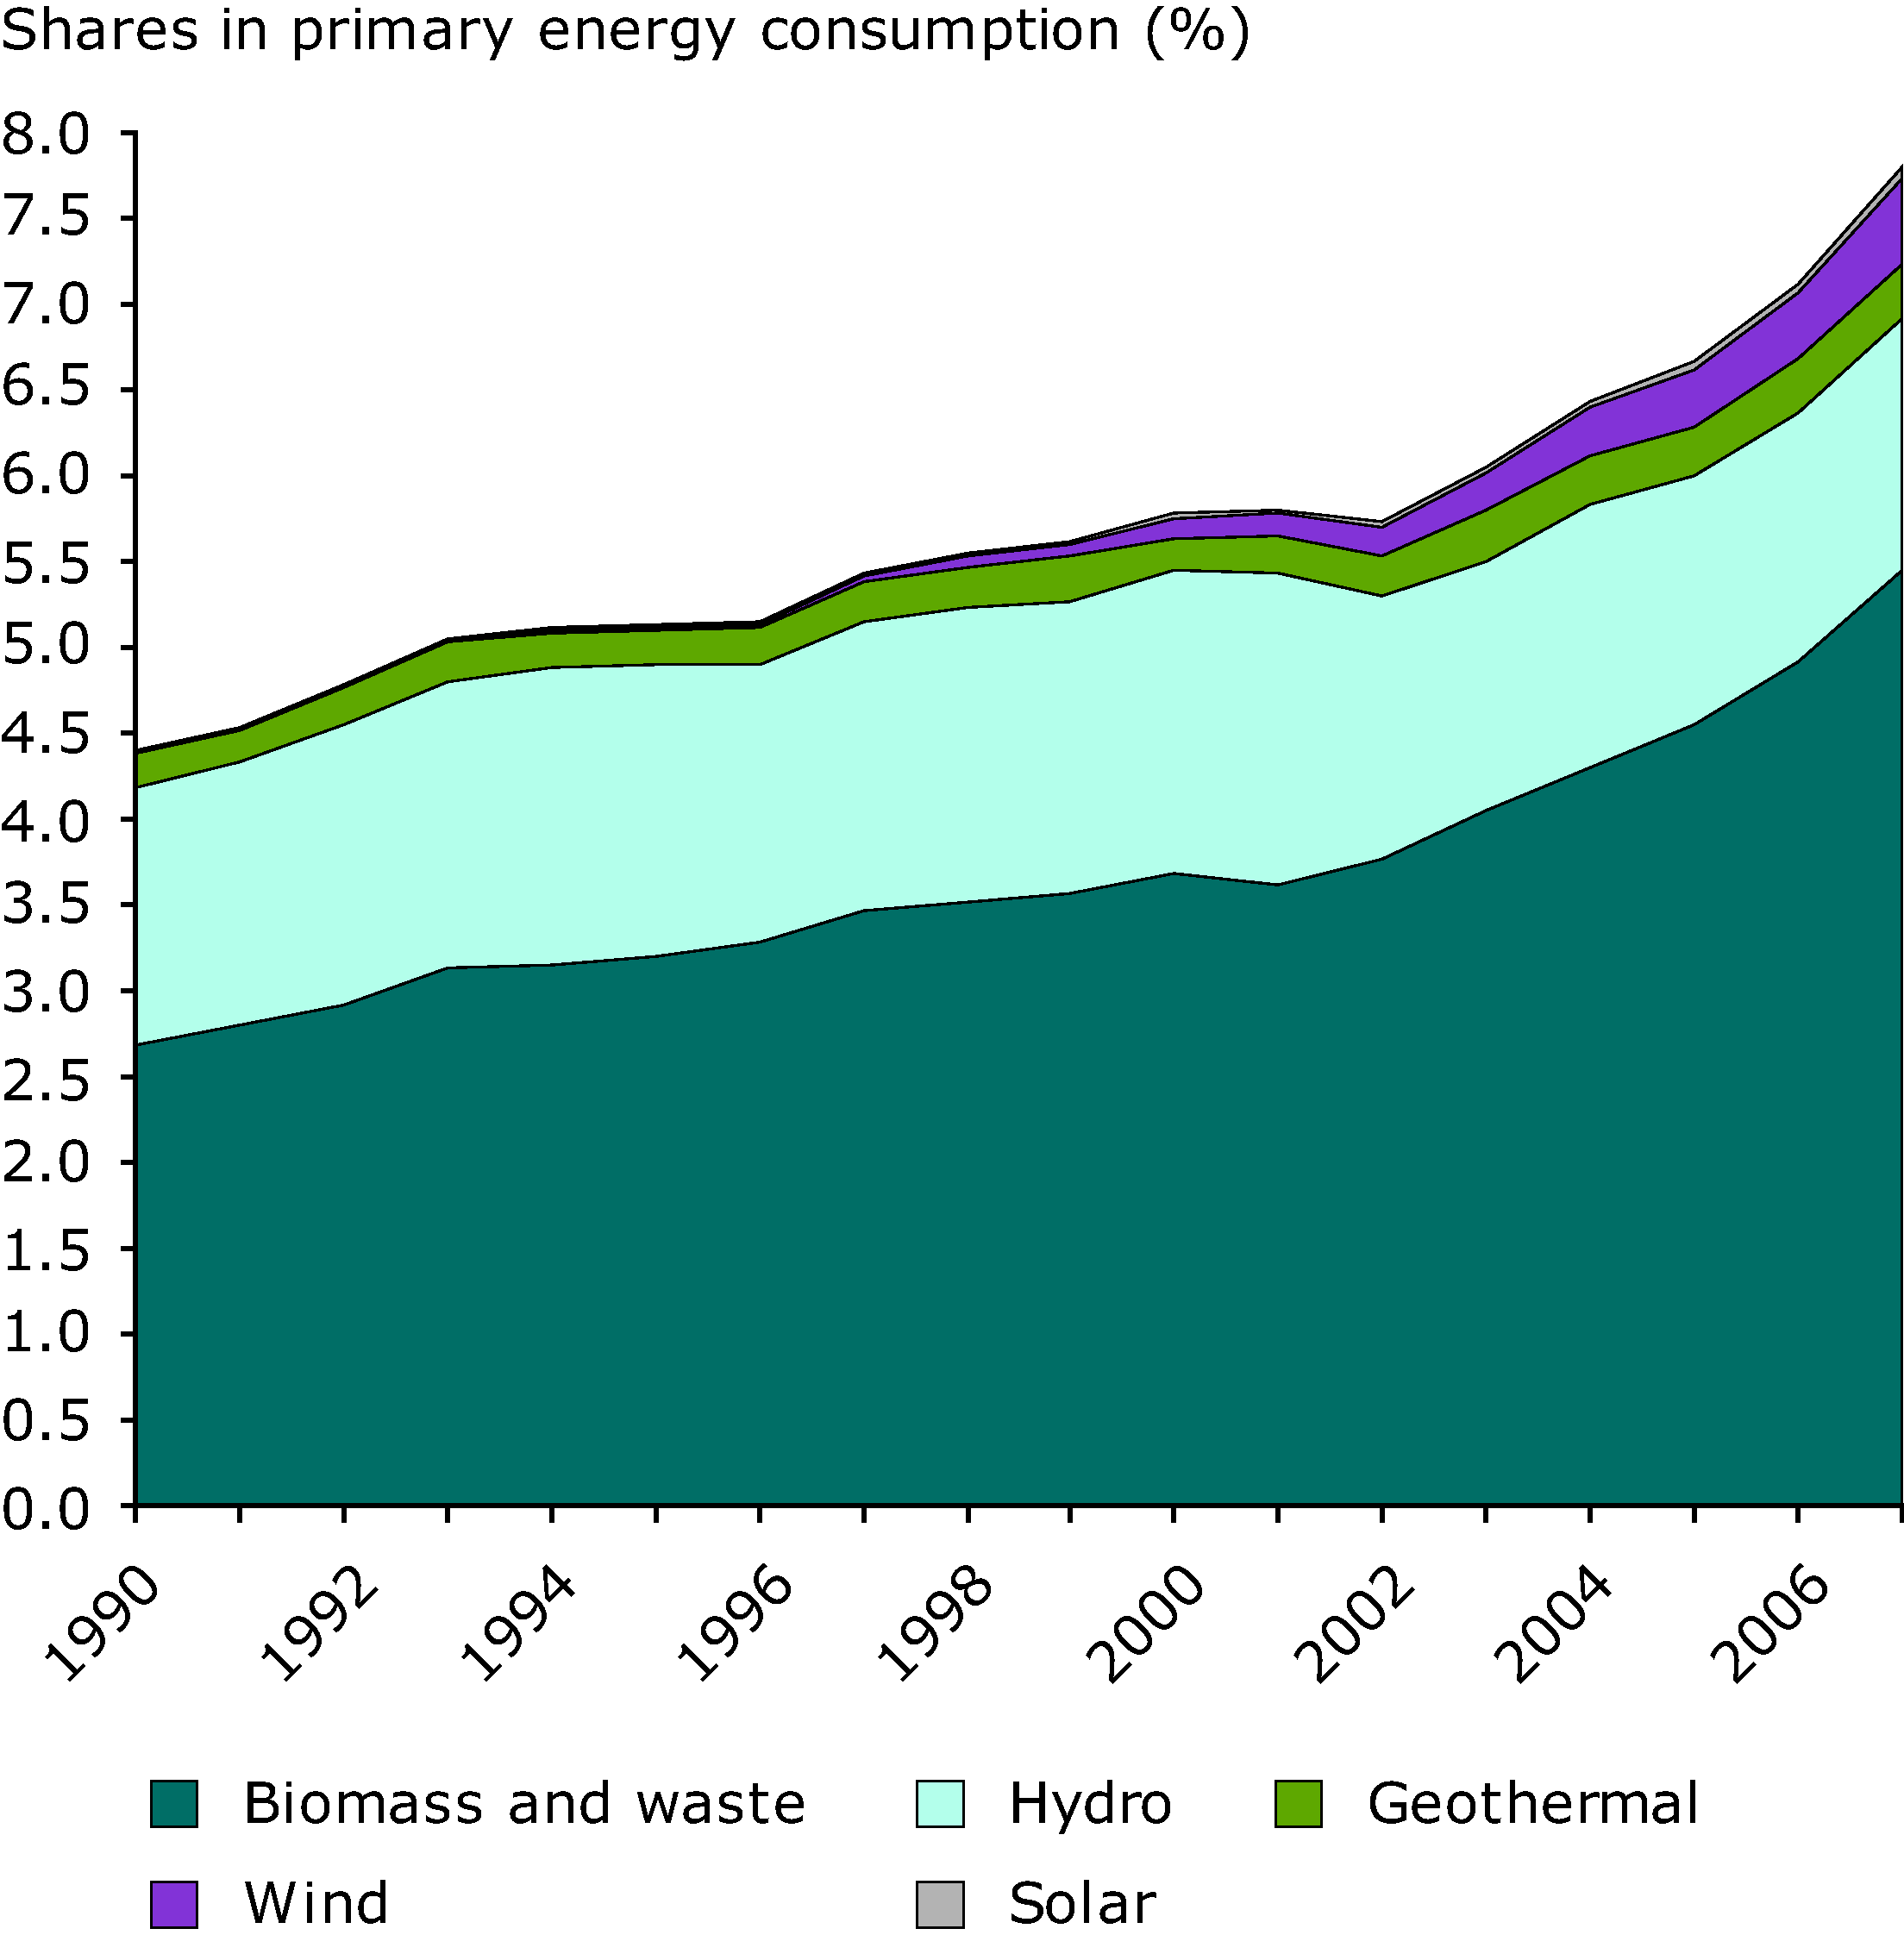 Contribution of renewable energy sources to primary energy consumption in the EU-27